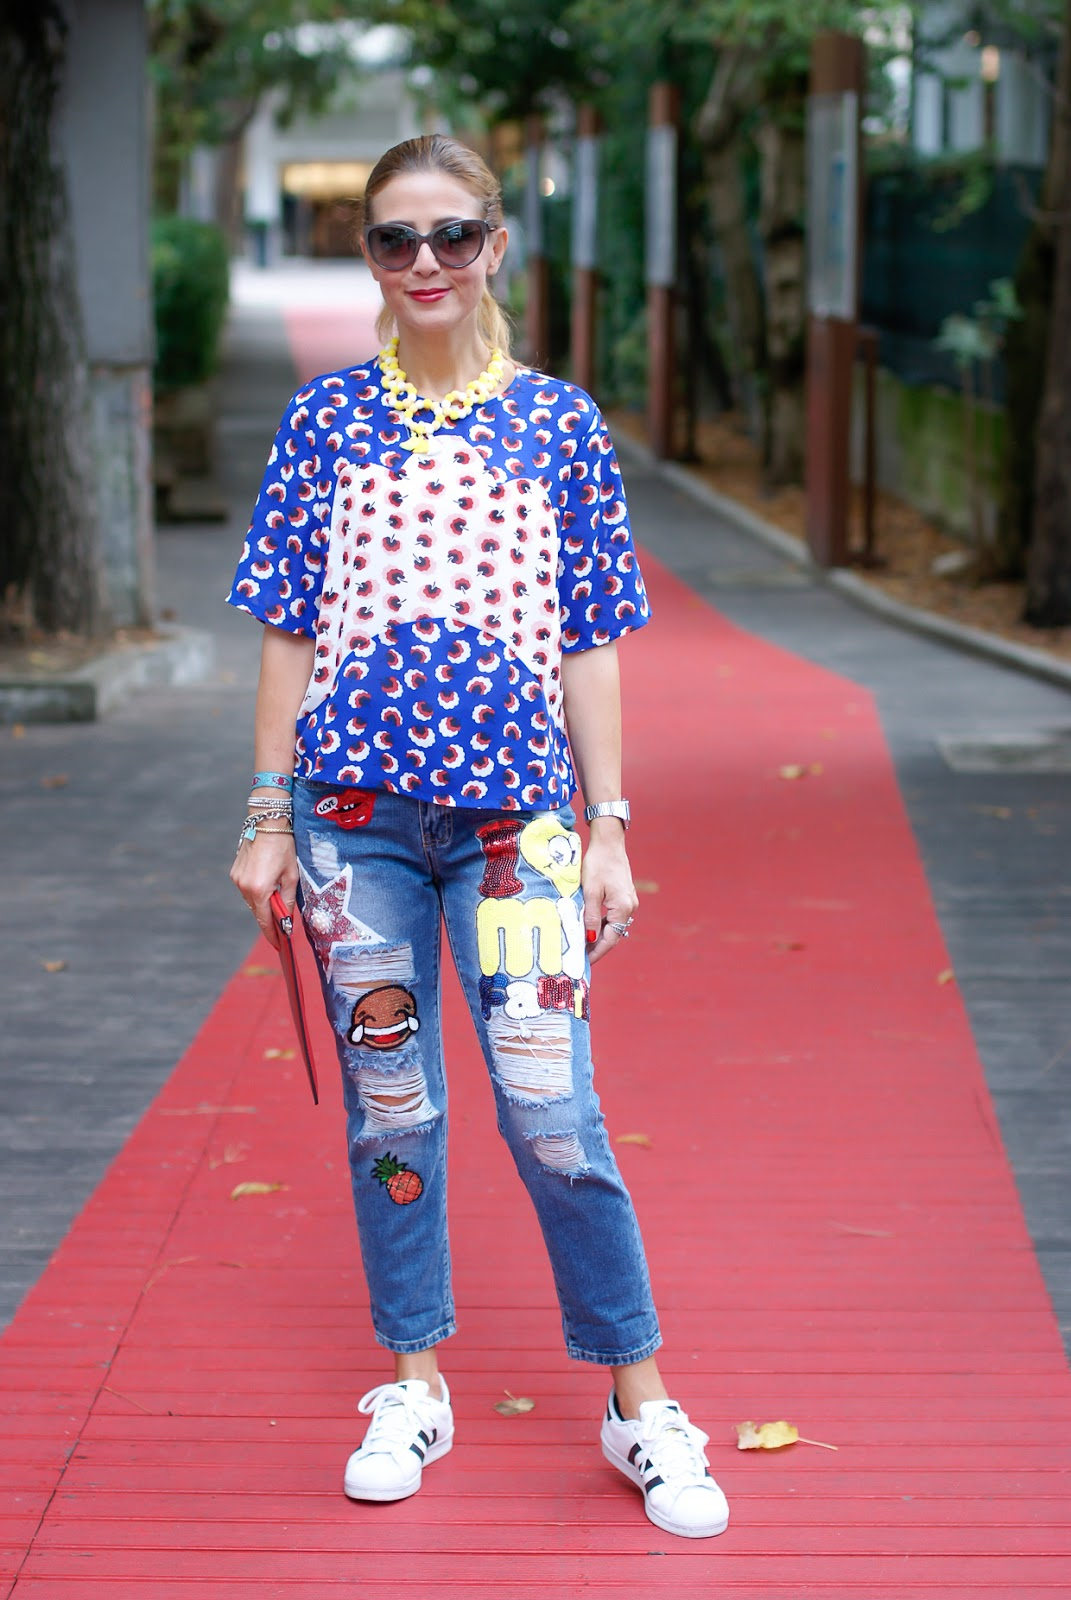 How to wear patched jeans on Fashion and Cookies fashion blog, fashion blogger style